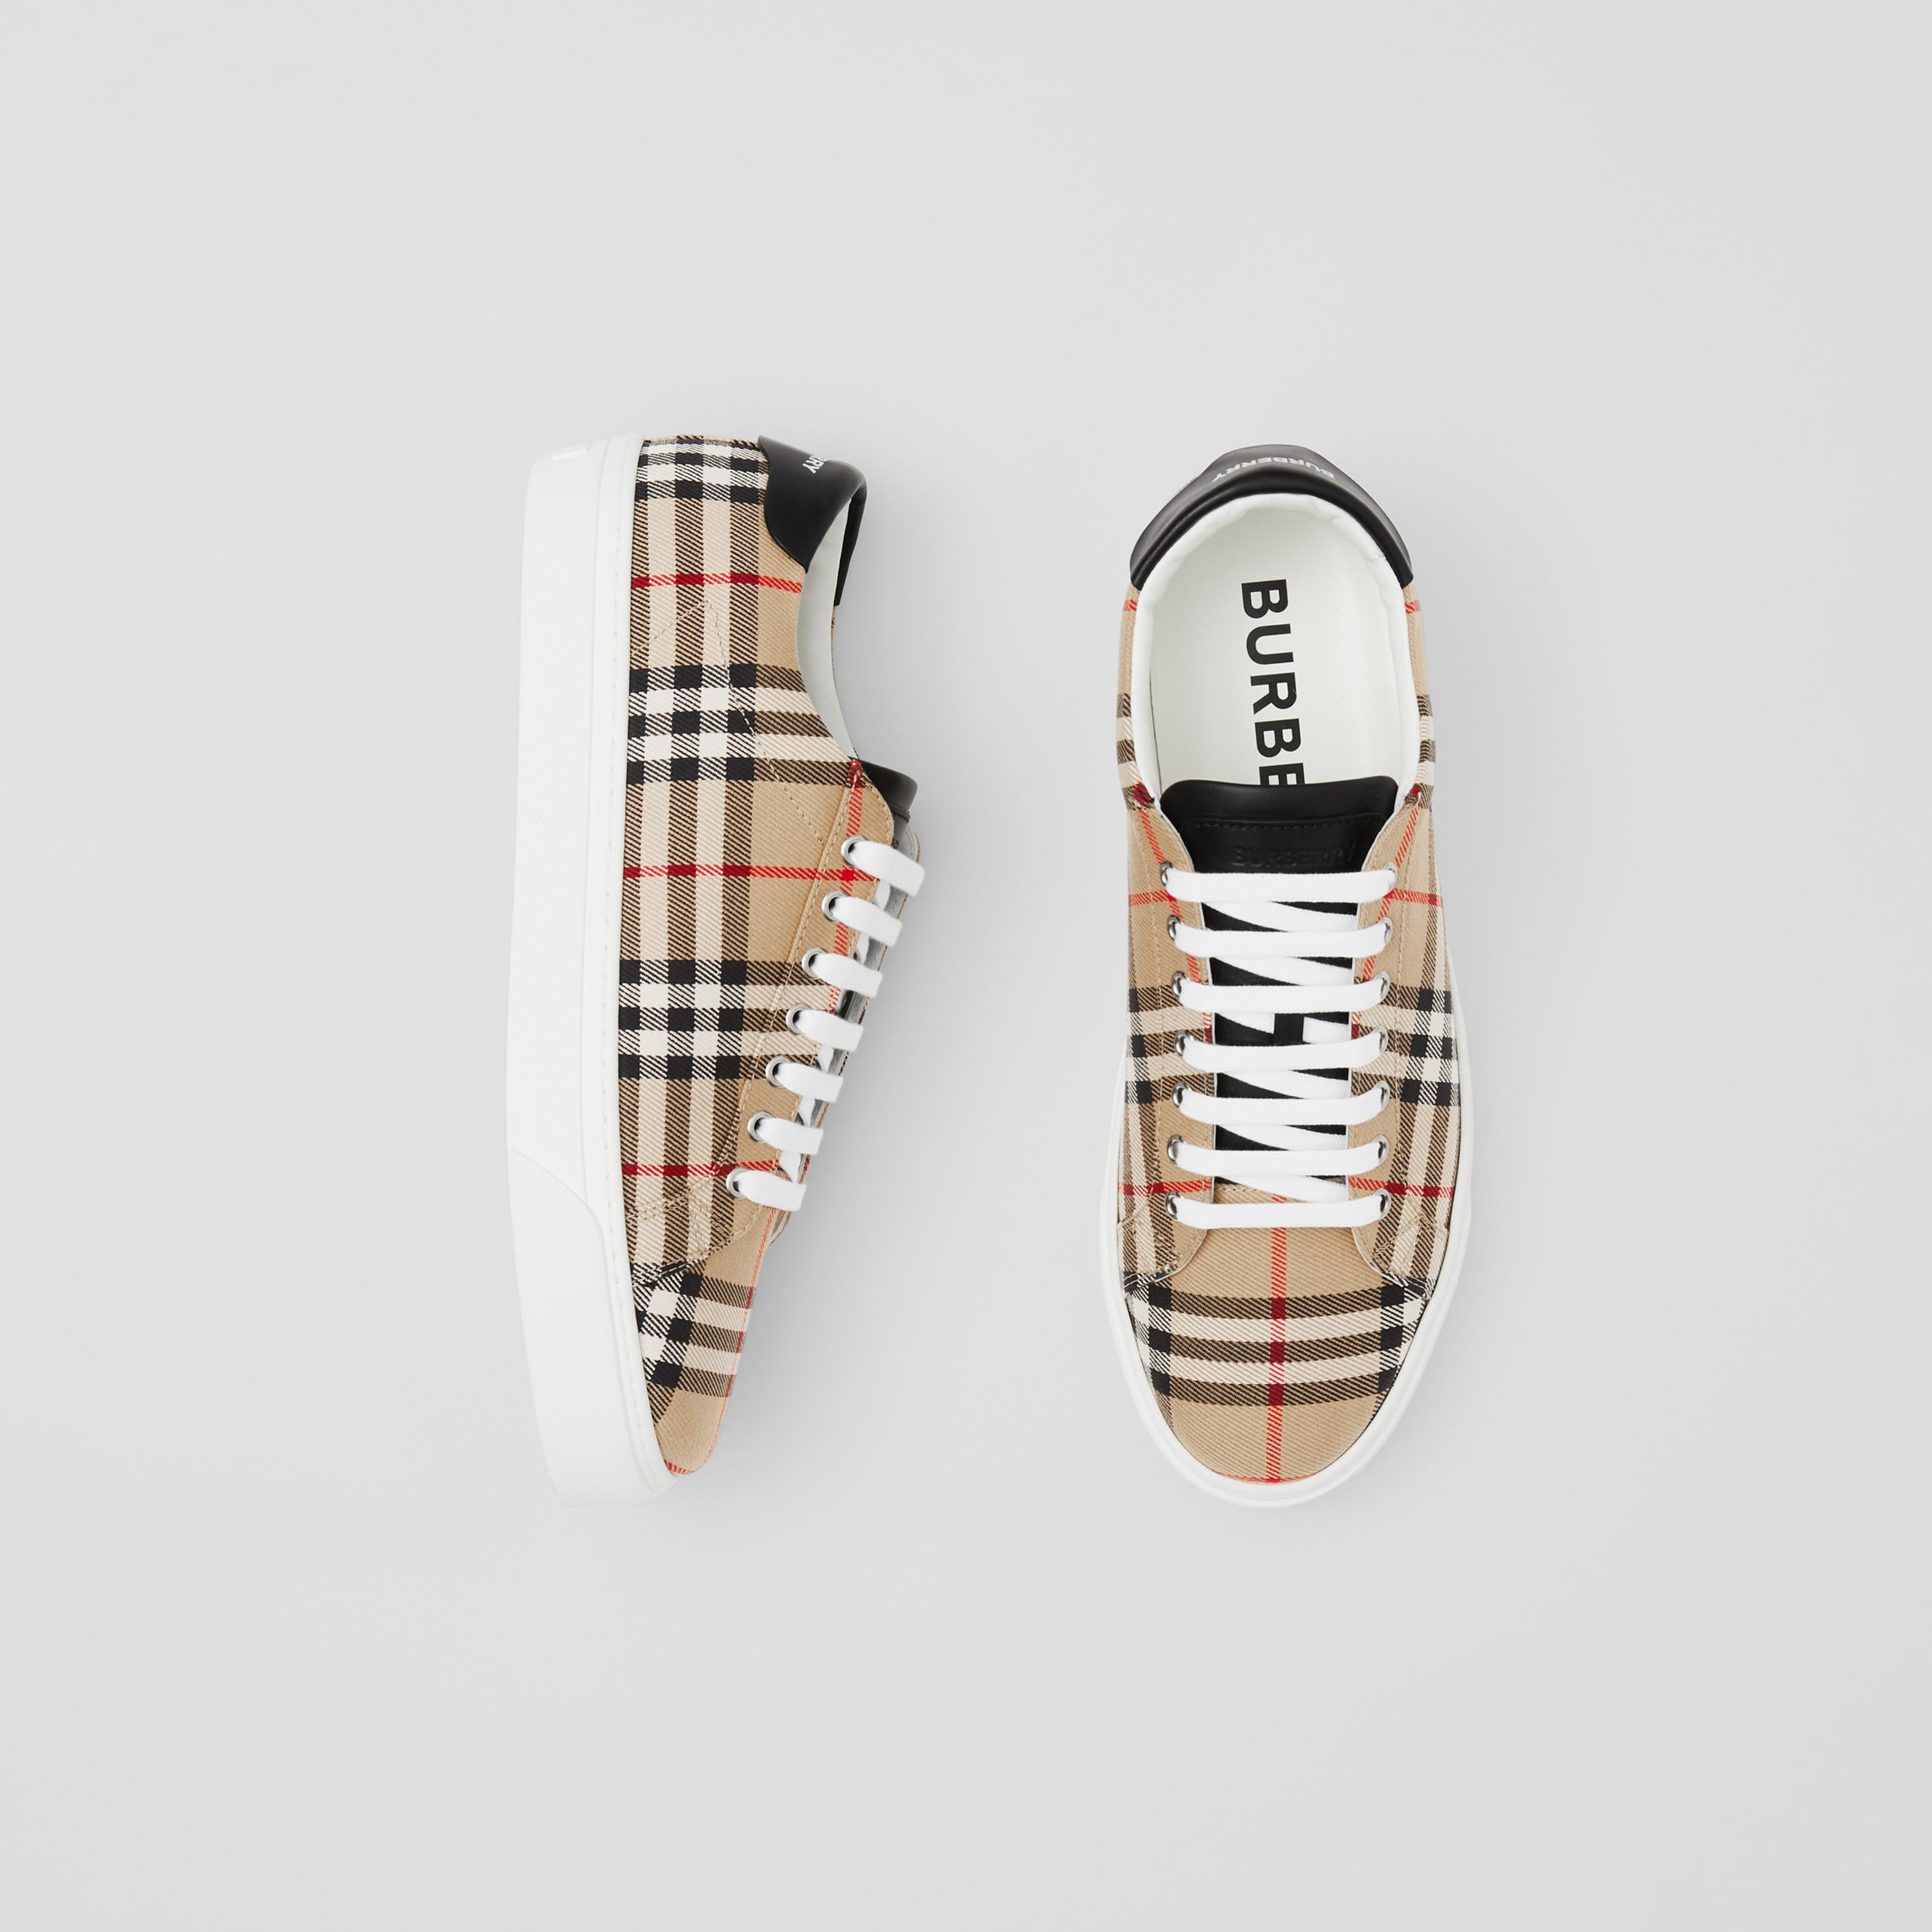 Bio-based Sole Vintage Check and Leather Sneakers in Archive Beige - Men | Burberry Canada - 1